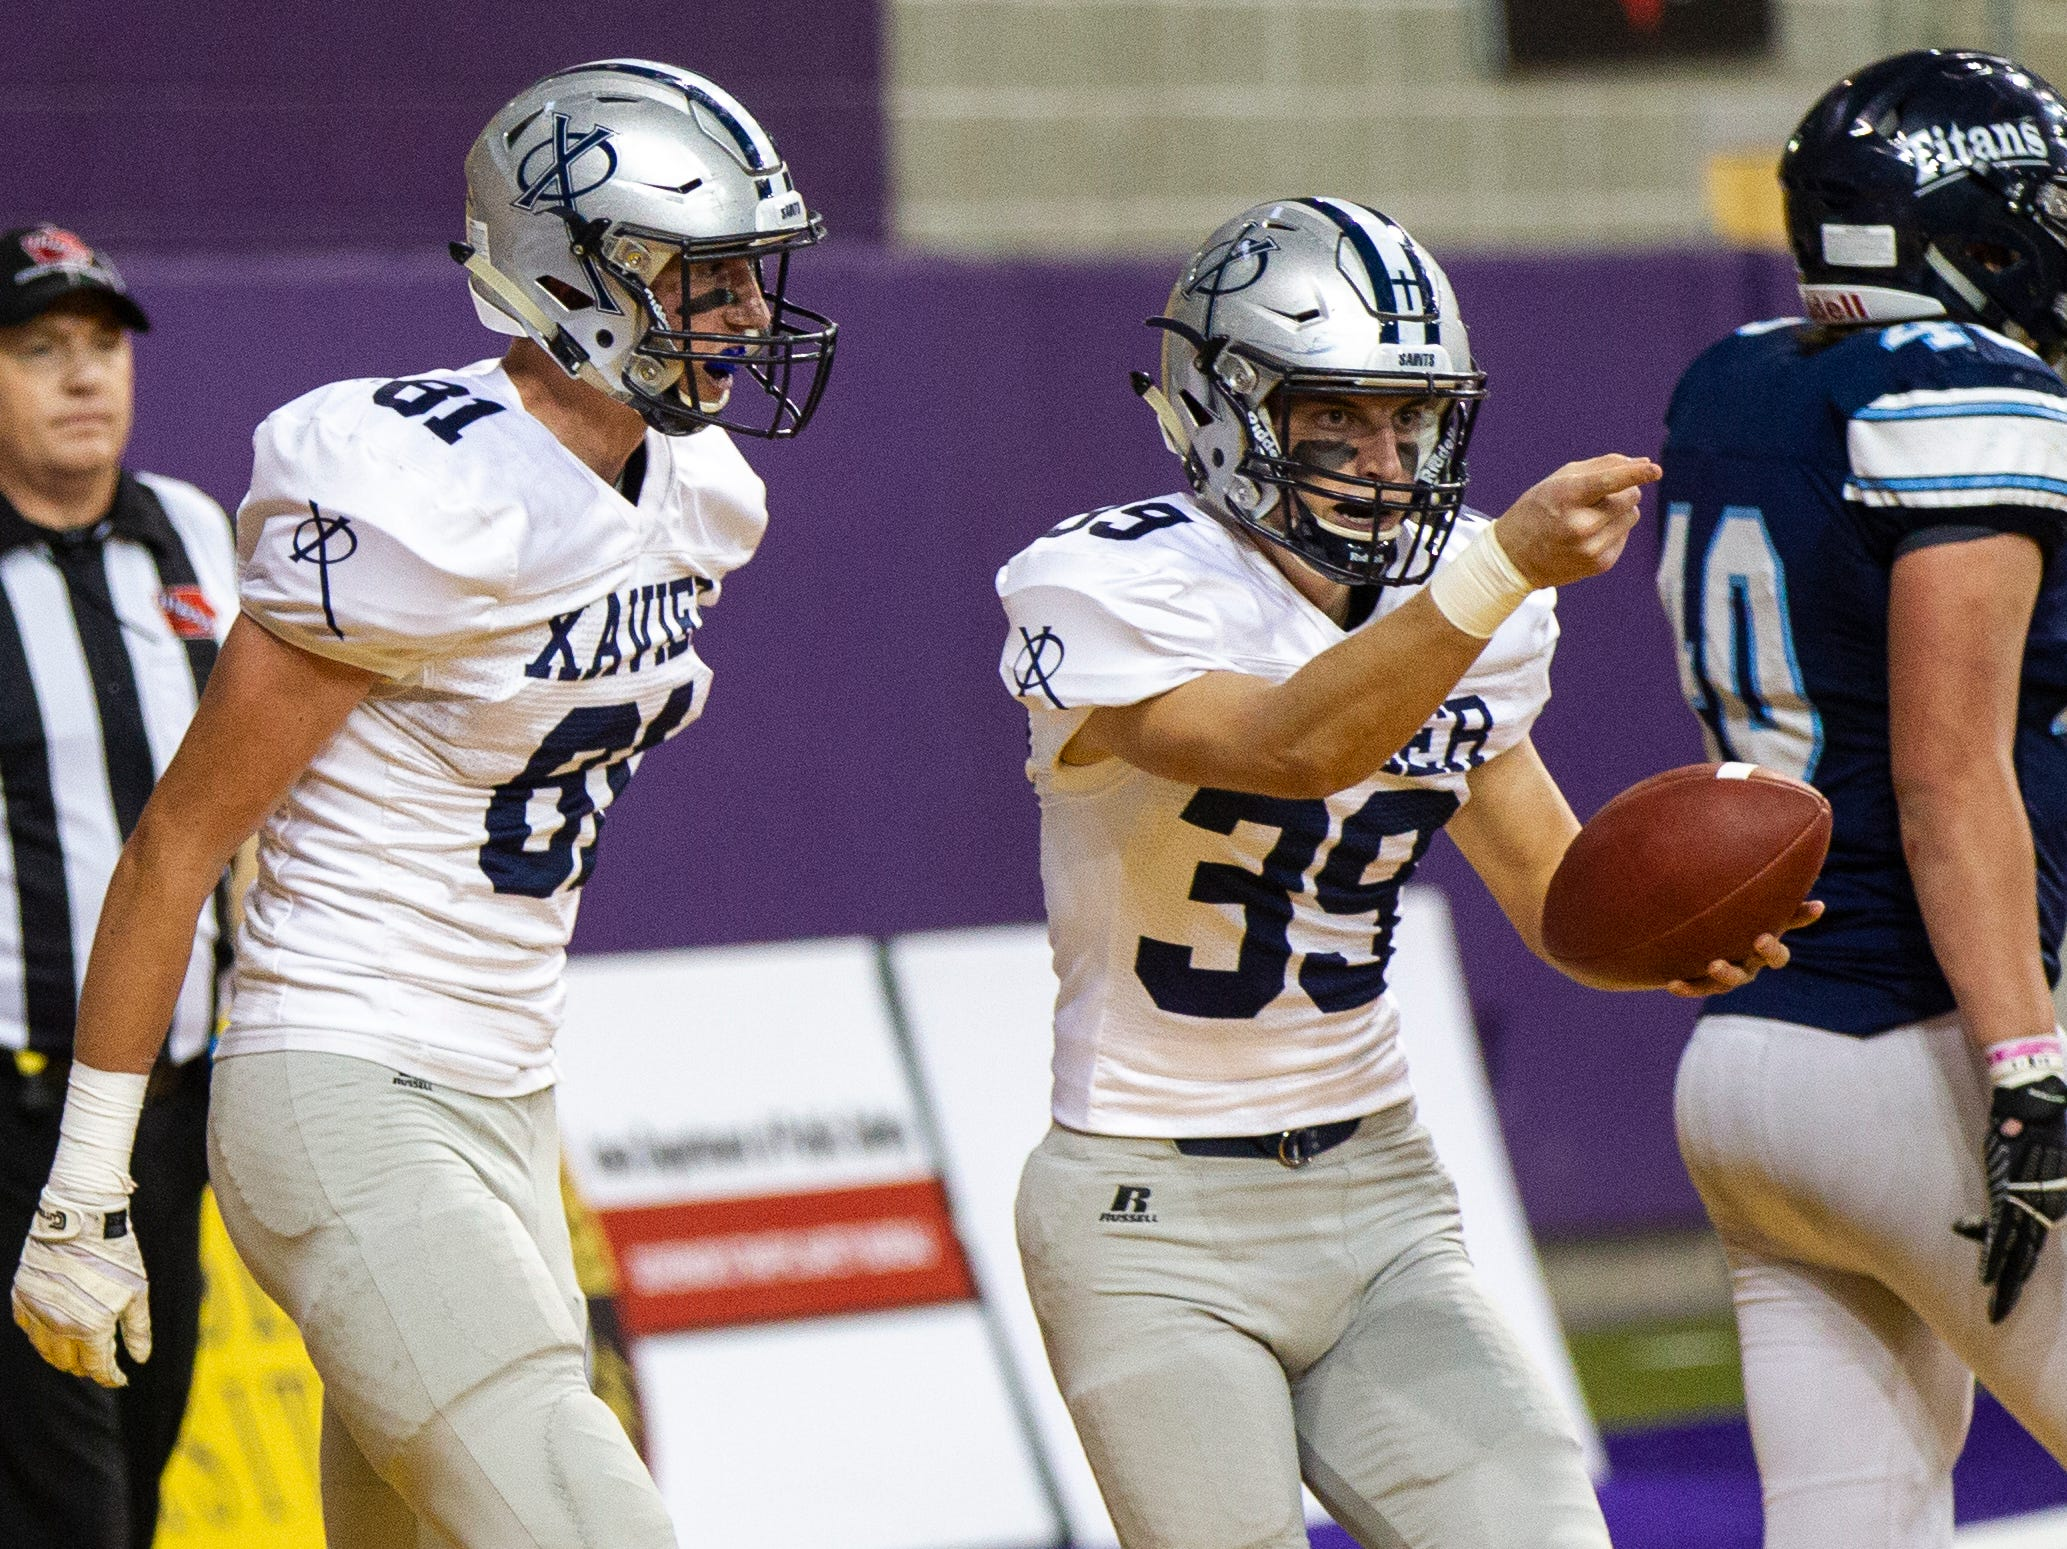 Cedar Rapids Xavier's Mitch Willey (39) celebrates after catching a touchdown during a Class 3A semi finals on Thursday, Nov. 8, 2018, at the UNI-Dome in Cedar Falls.